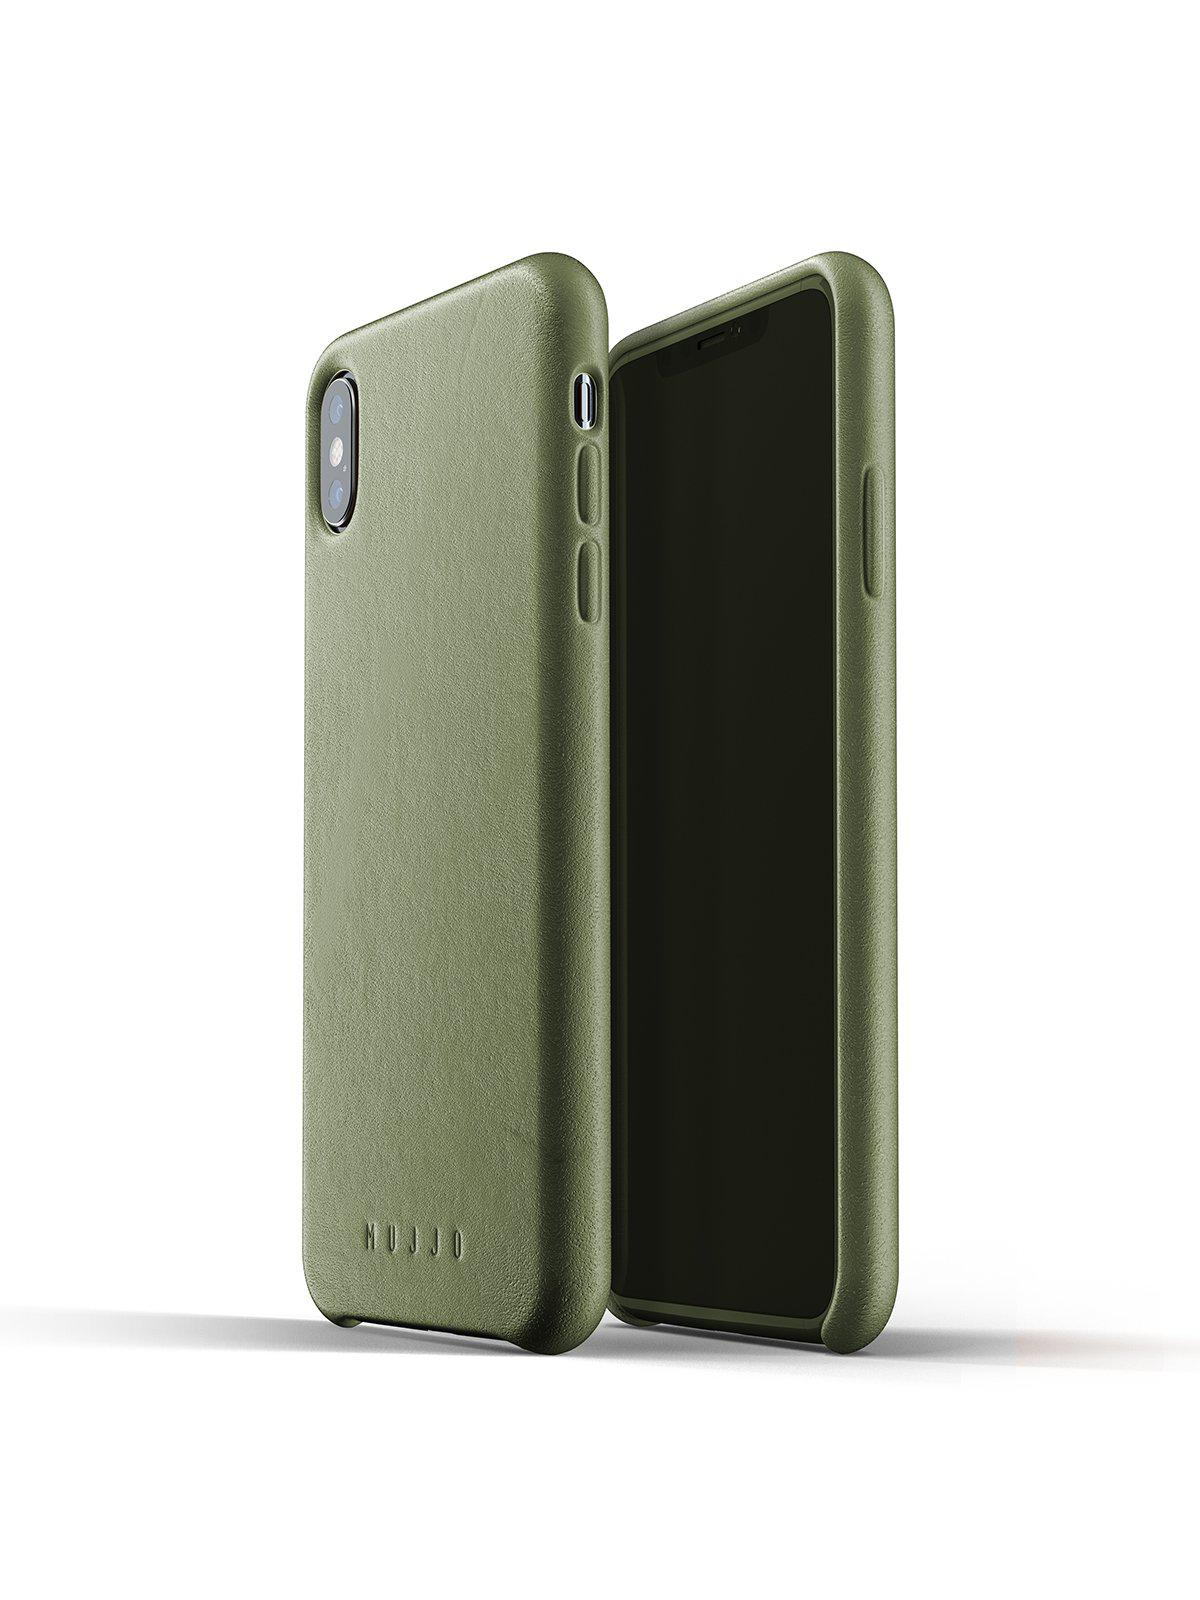 Mujjo Full Leather Case for iPhone XS Max Olive - MORE by Morello Indonesia